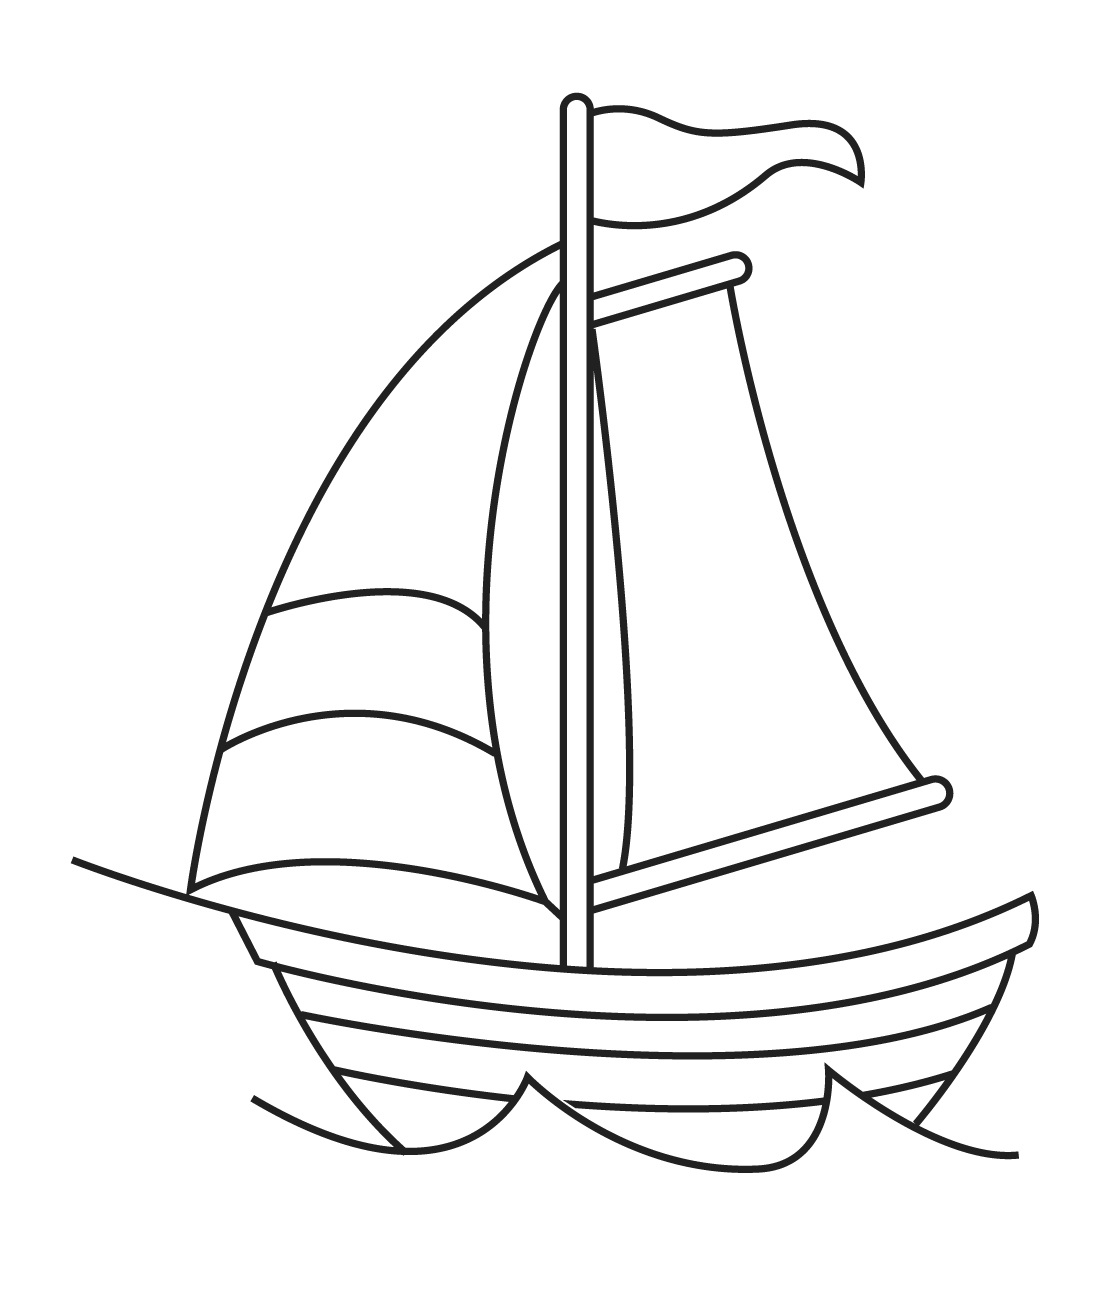 1119x1297 How To Draw A Pirate Ship